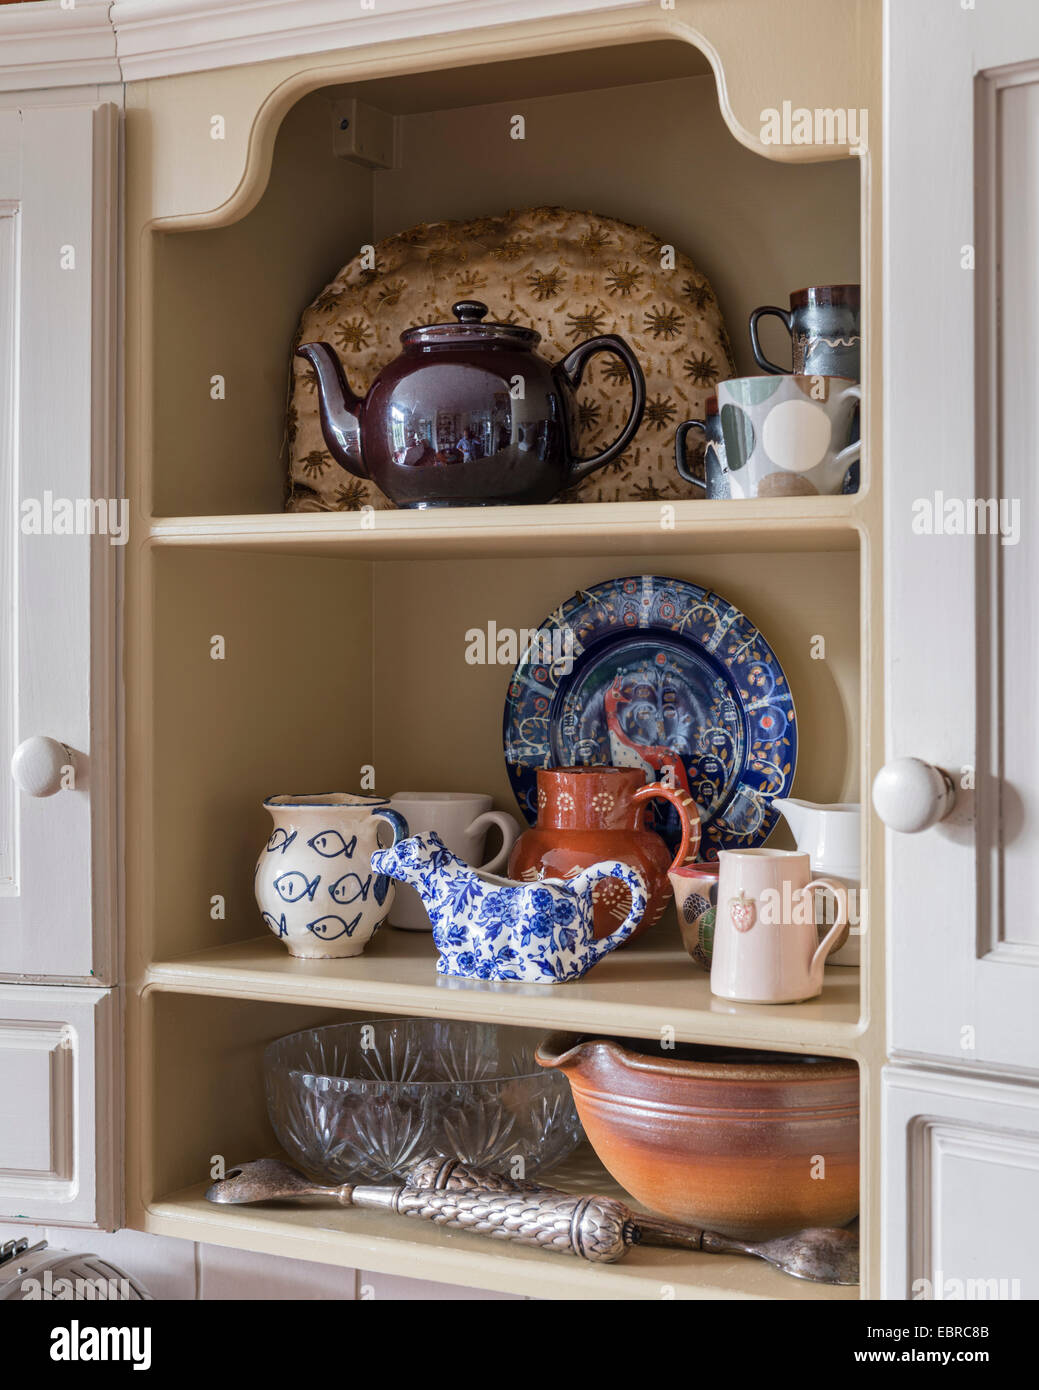 Kitchen and chinaware on recessed shelf - Stock Image